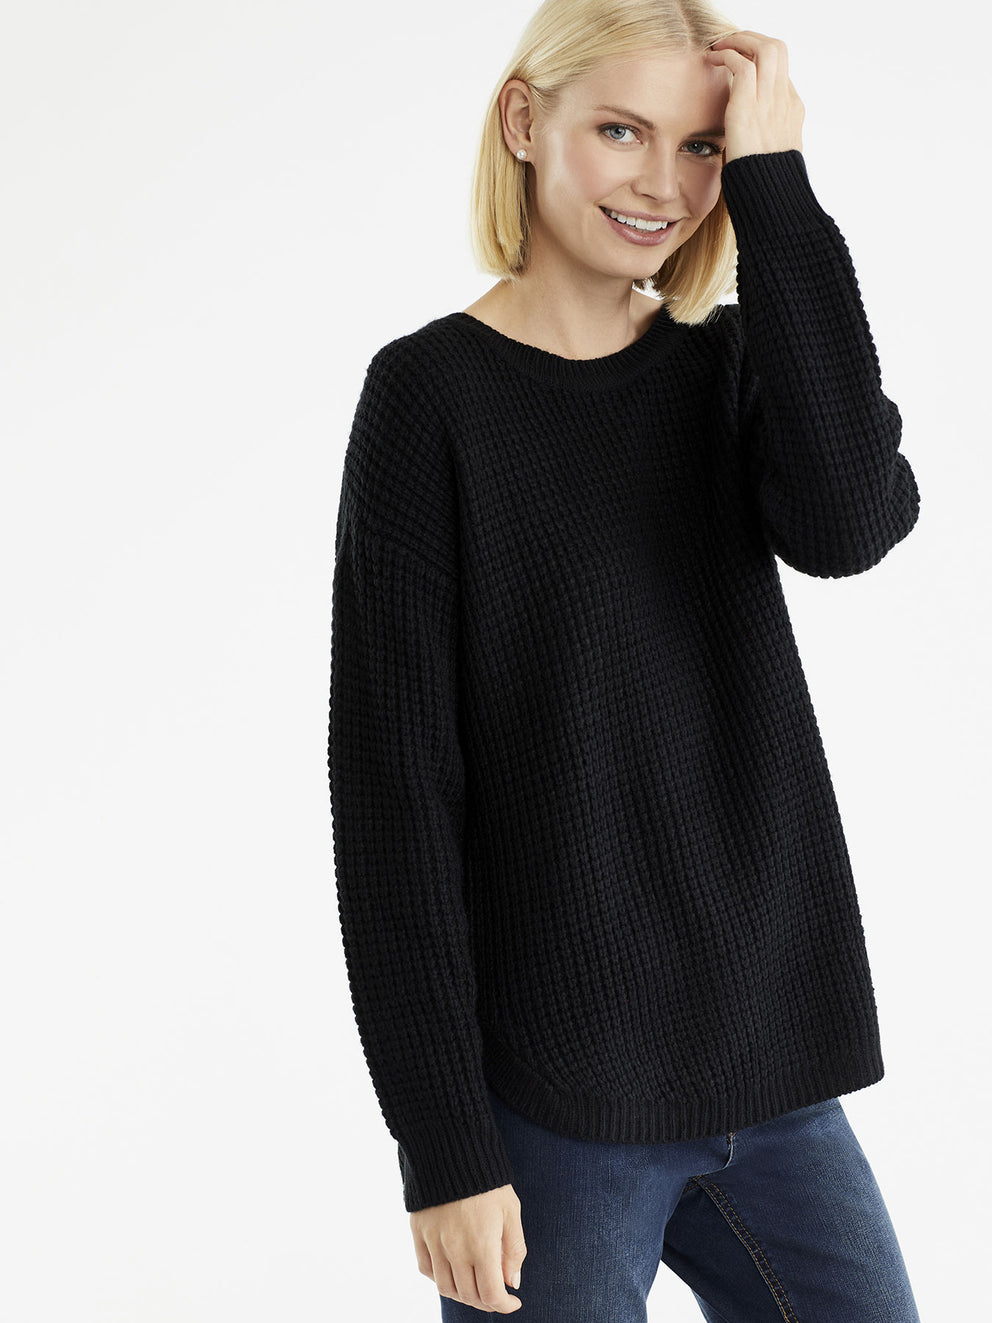 Tuck Stitch Sweater, Plus Size Color Black